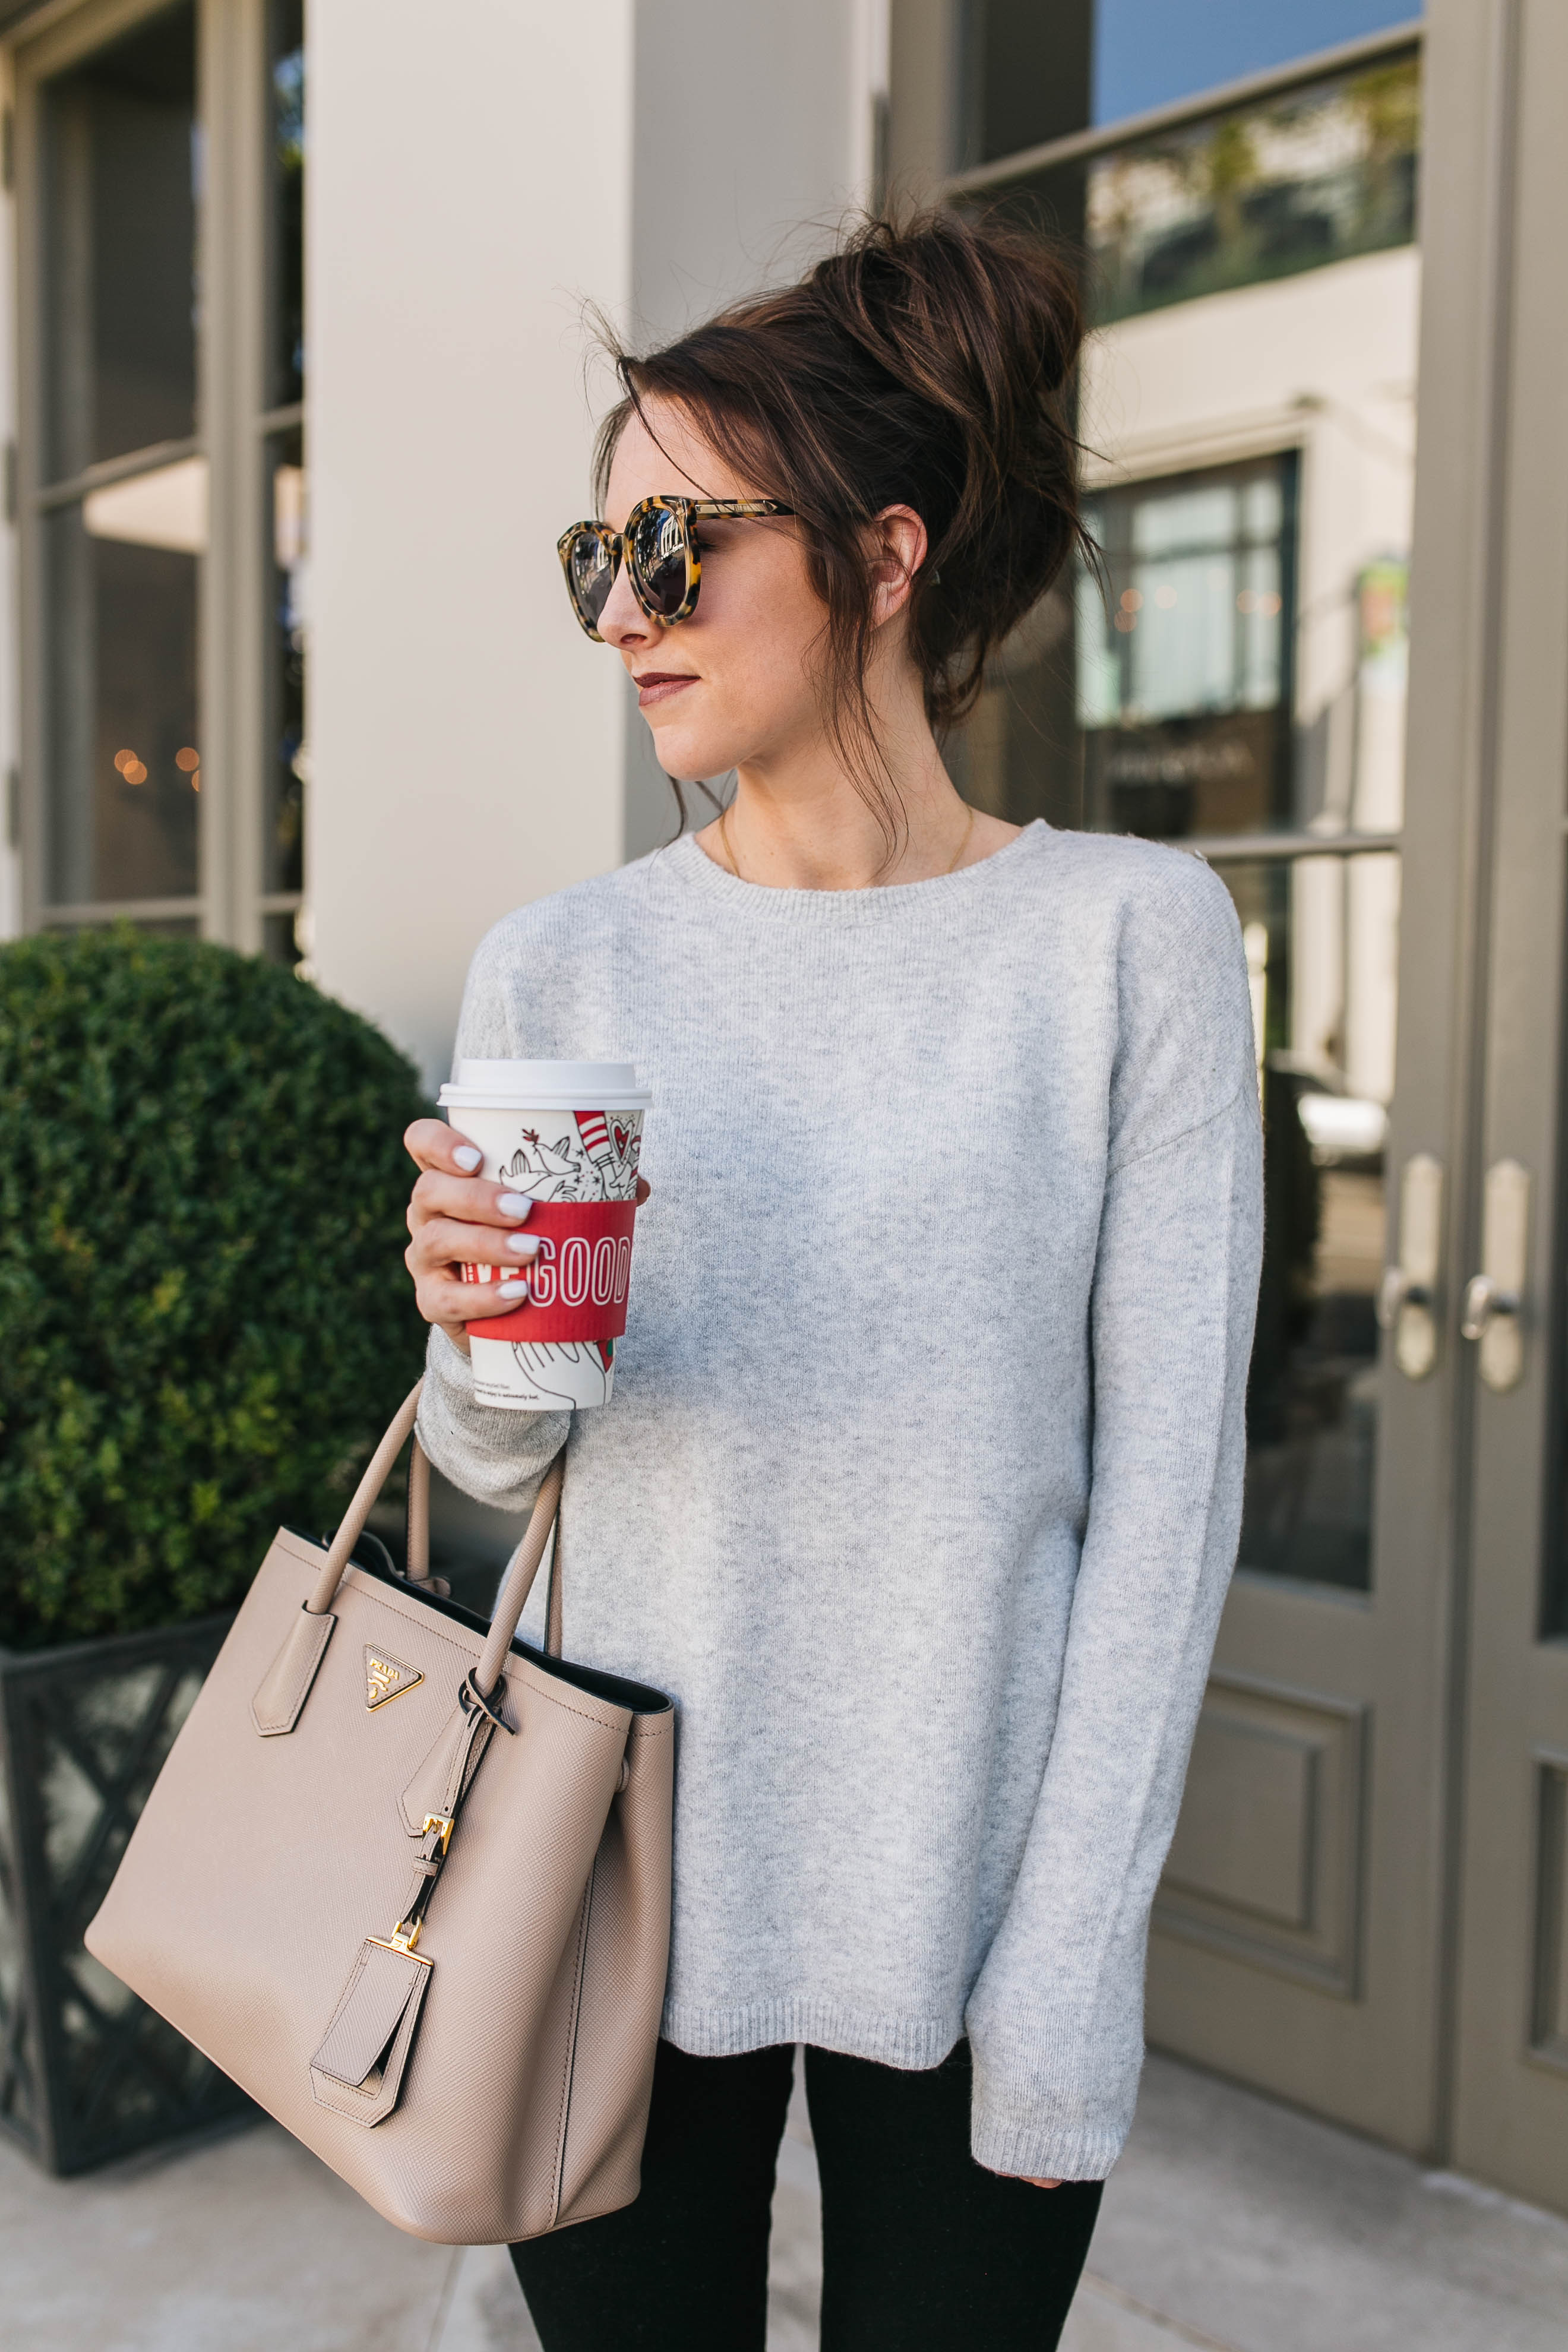 Style blogger Daryl-Ann Denner wears a bow back sweater from Nordstrom, black ripped skinny jeans from Abercrombie & Fitch, a nude Prada bag and a hot chocolate in a Starbucks holiday cup.